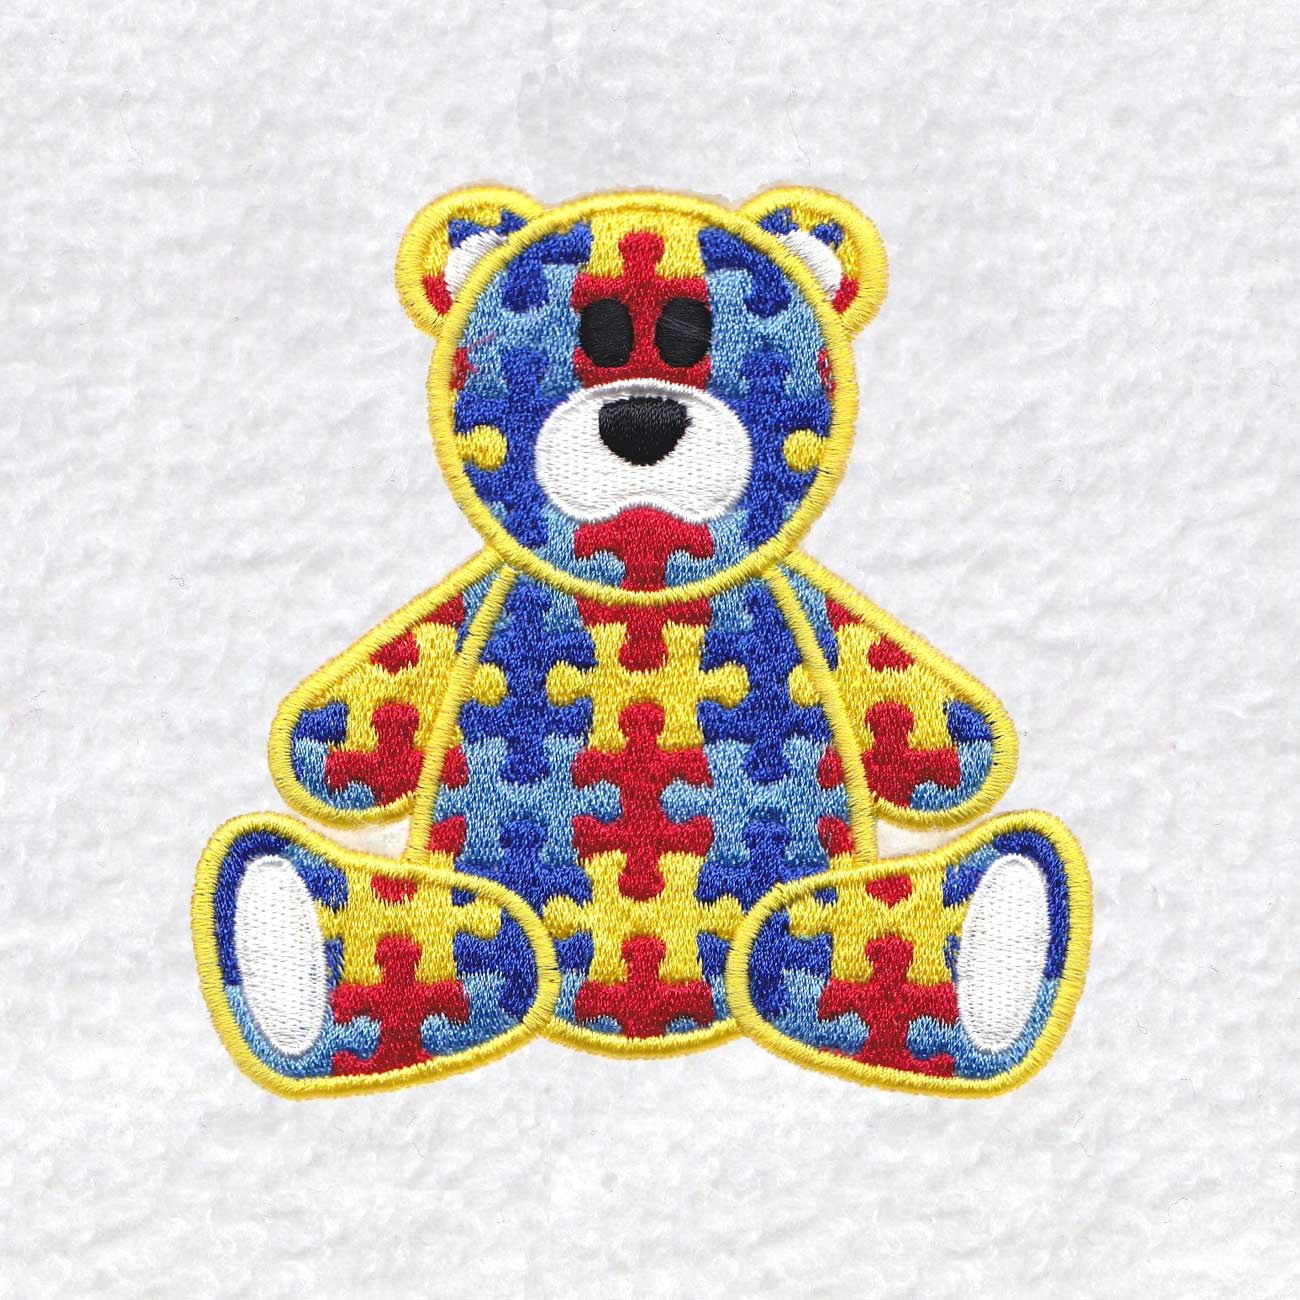 sit sitting colored colorful puzzle detail puzzled teddy teddie bear embroidery design support autism awareness sizes large medium small feltie